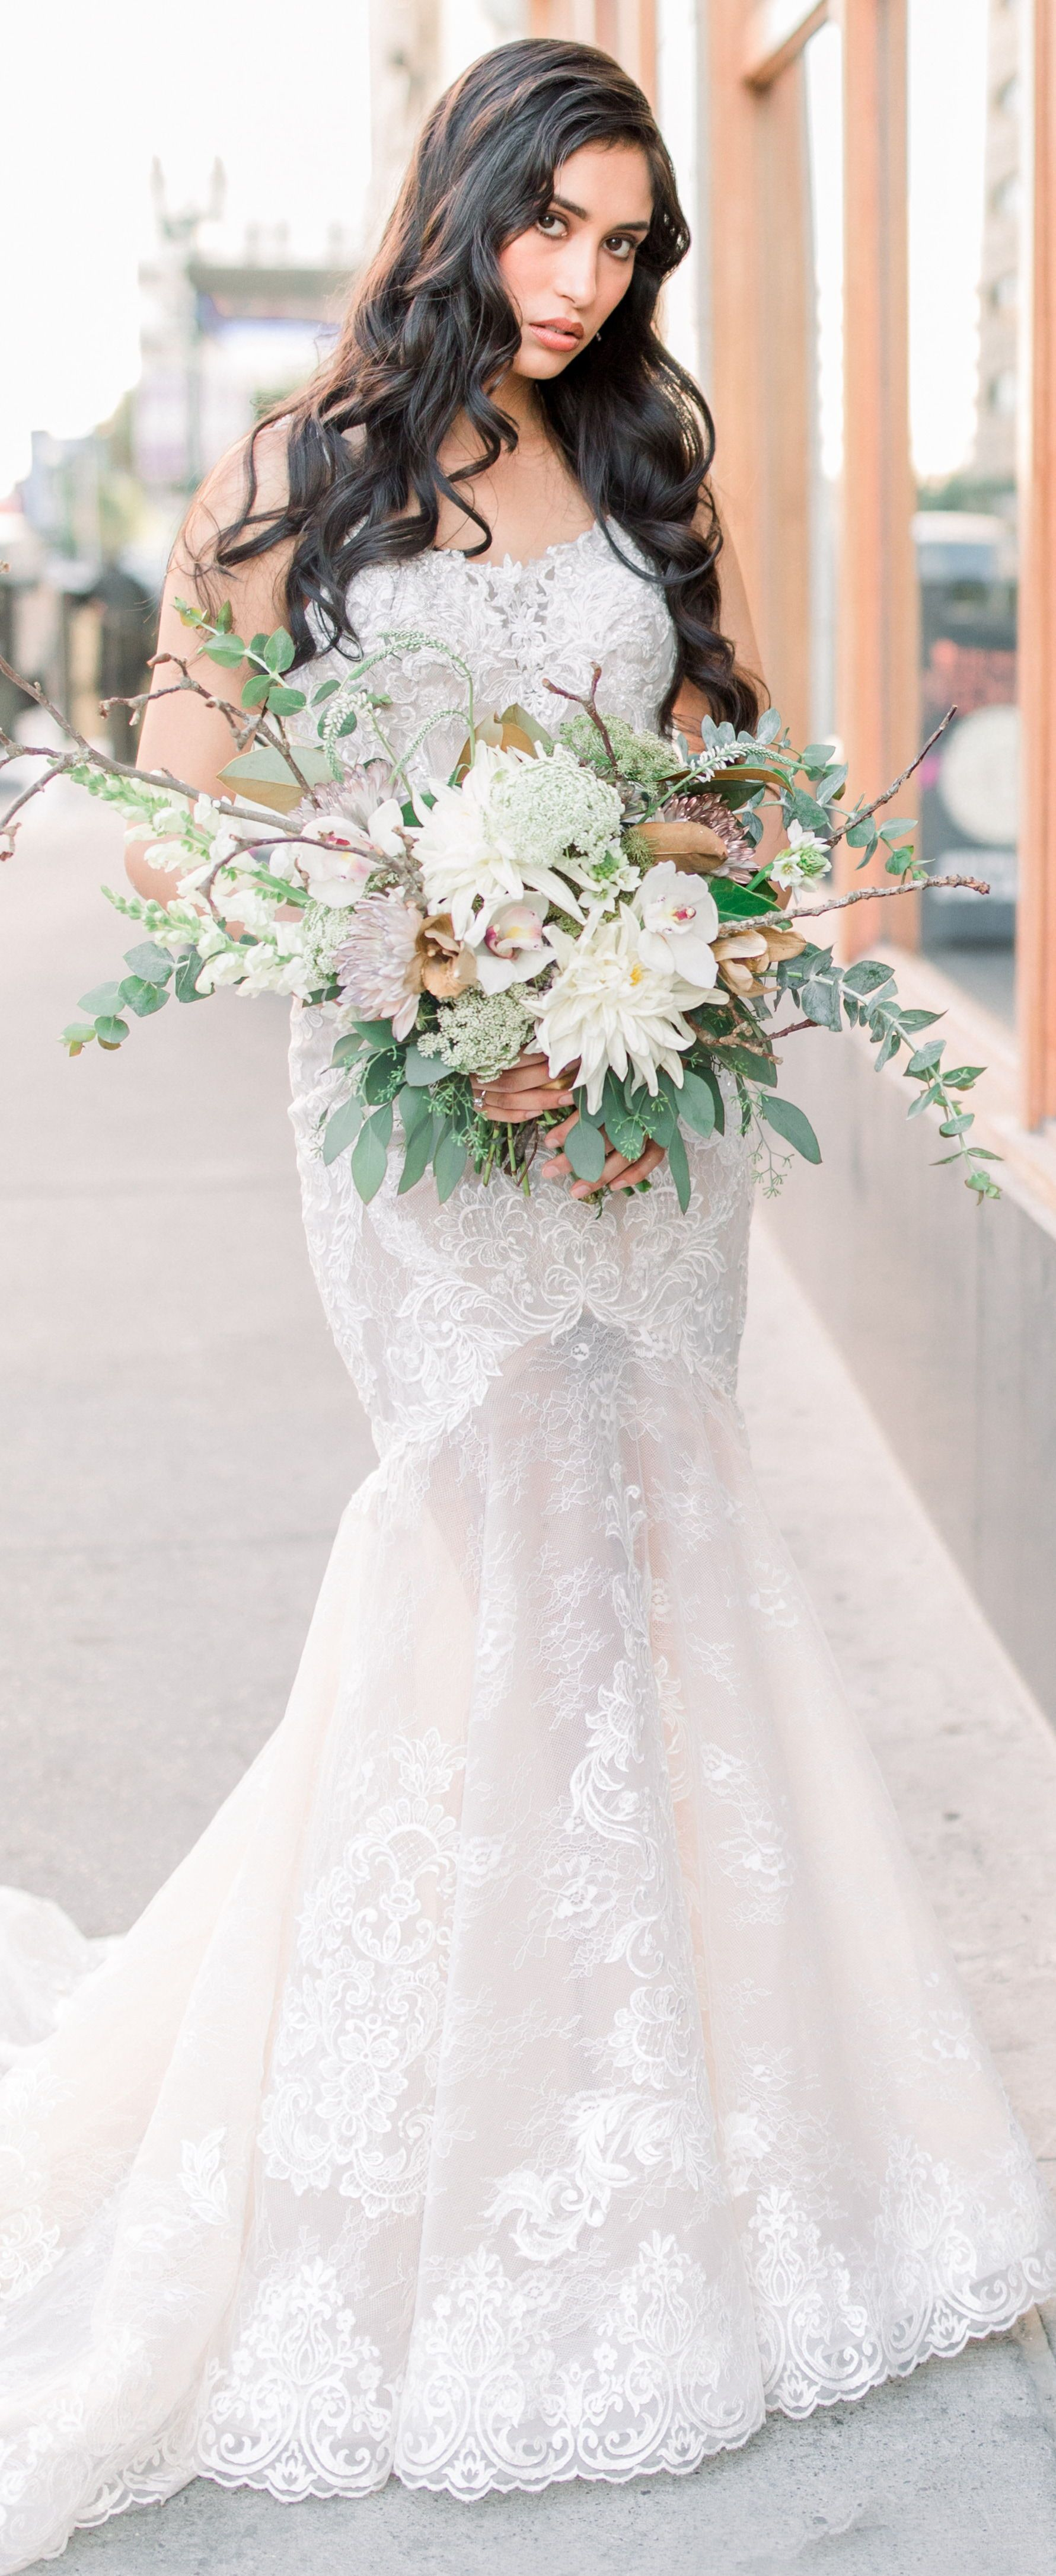 Lace Mermaid Wedding Dress By David S Bridal With Trumpet Skirt Paired With An Organic Wild Bouquet Wedding Dresses Latest Wedding Gowns Fitted Wedding Dress [ 4346 x 1781 Pixel ]